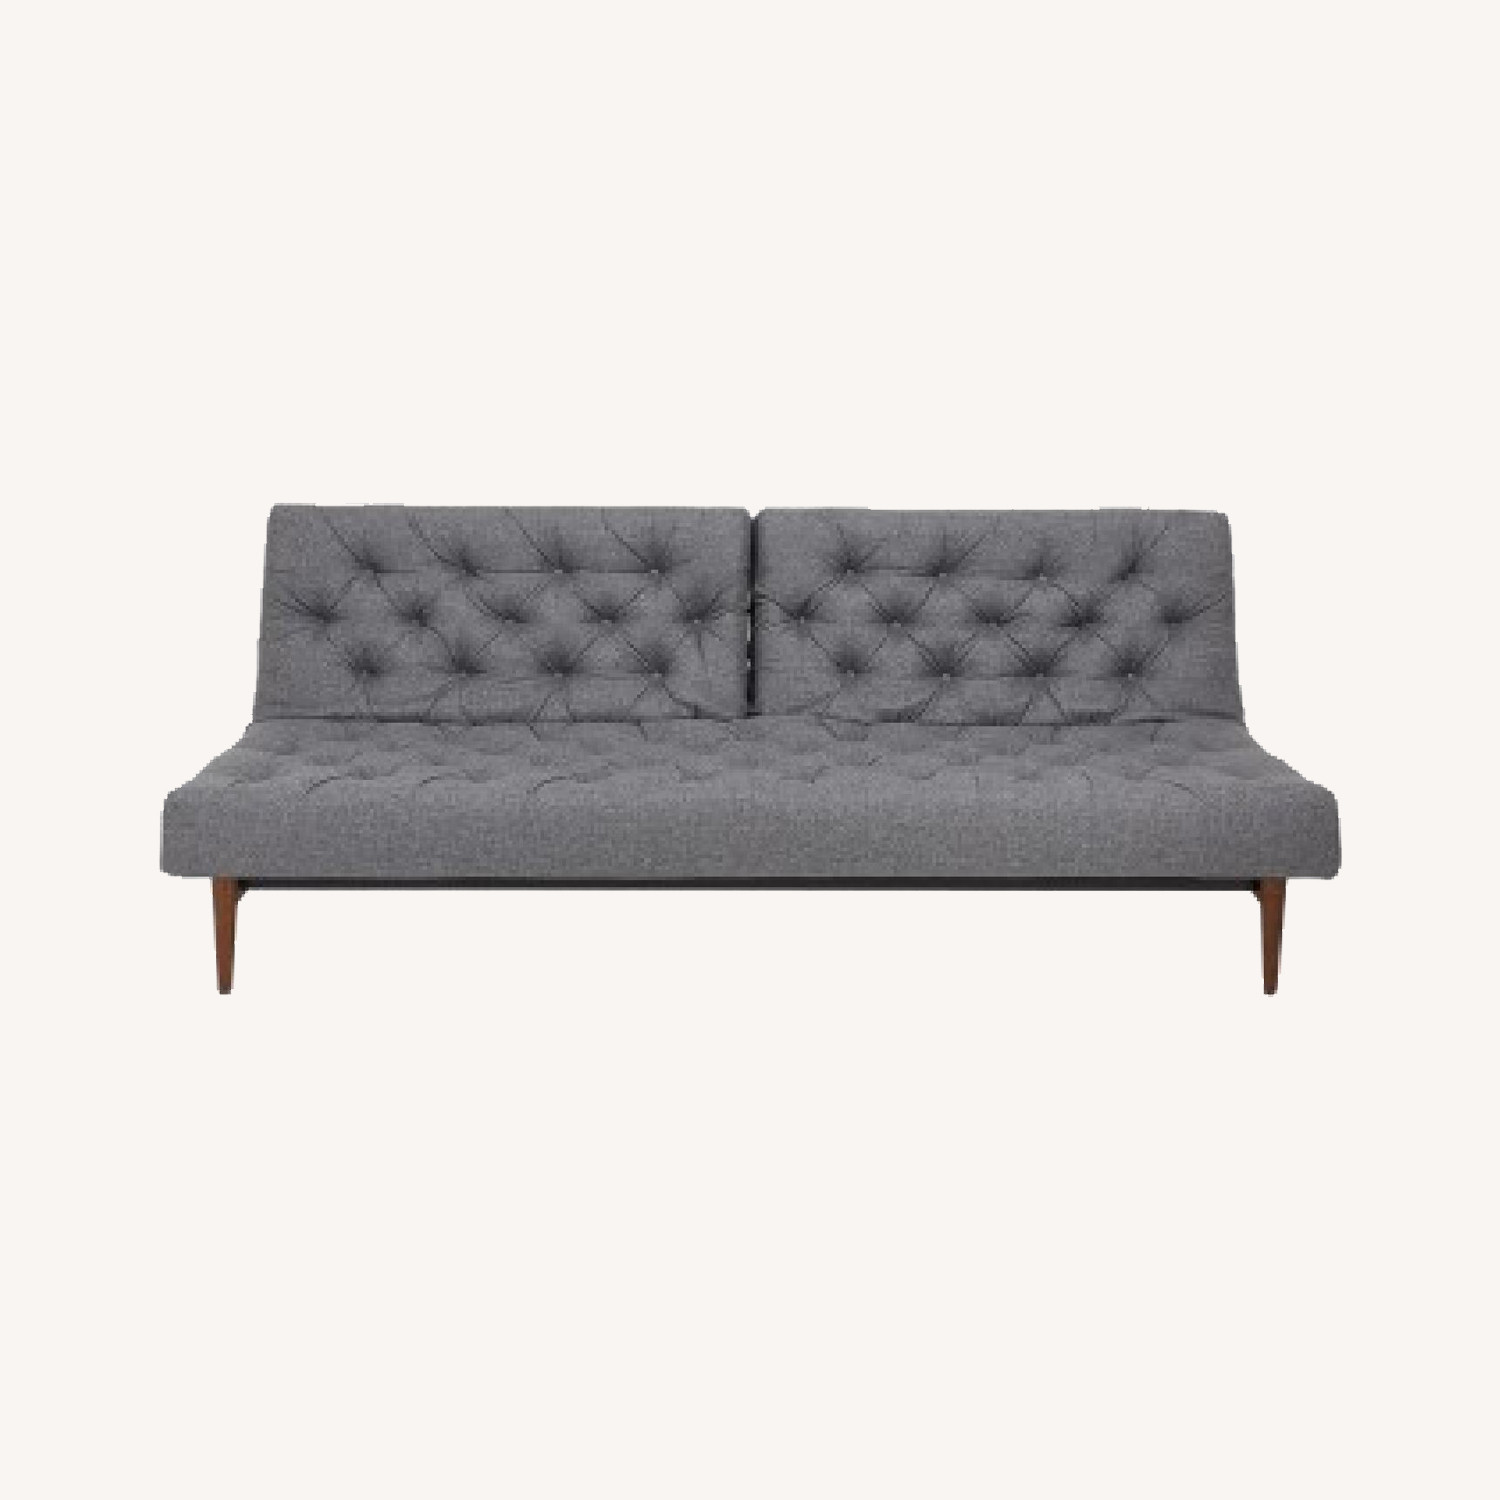 ABC Carpet & Home Chesterfield Futon/Daybed